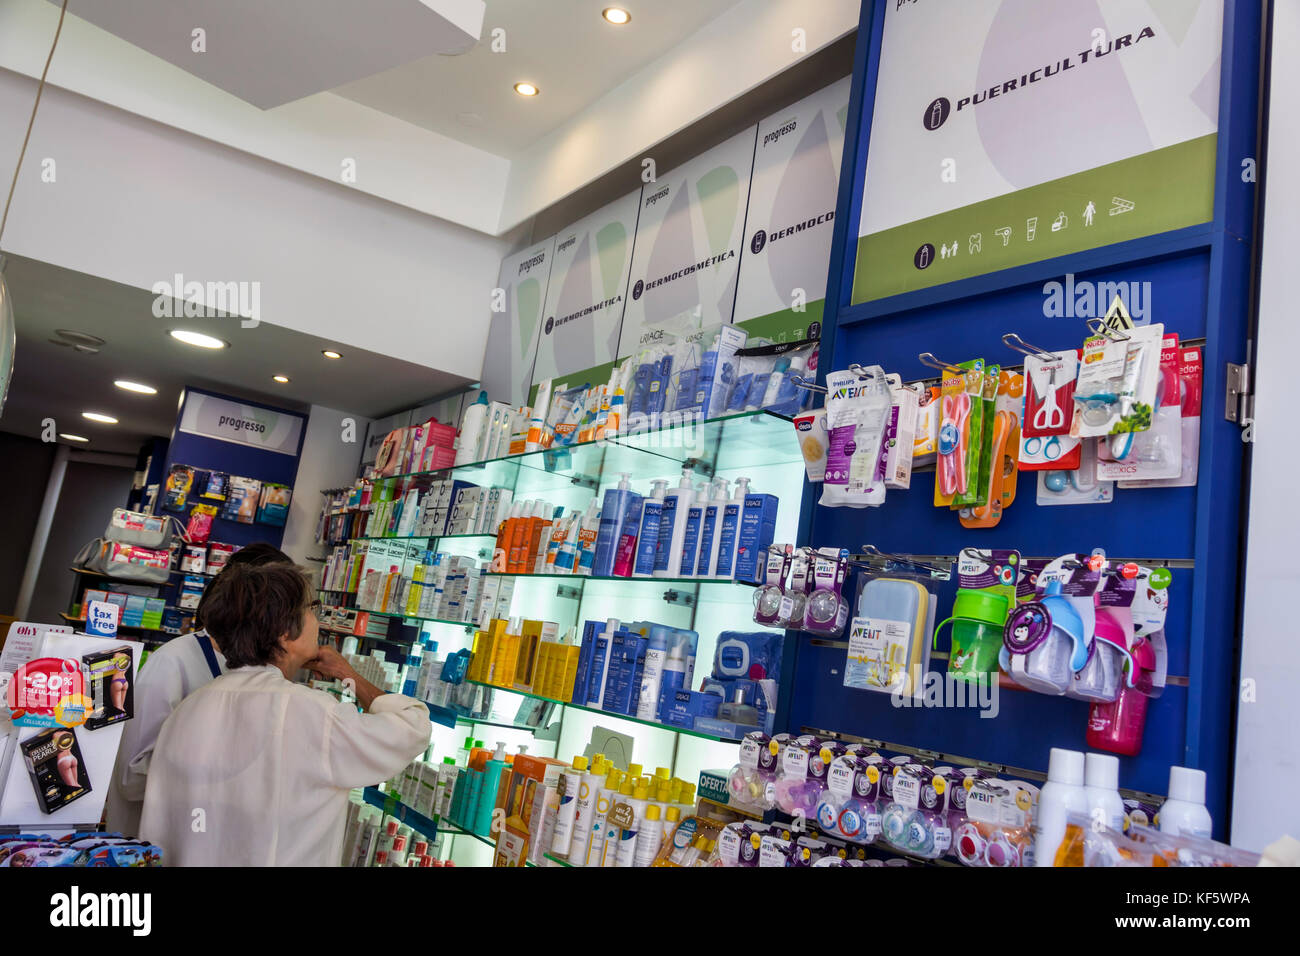 Lisbon Portugal Bairro Alto Farmacia Oliveira Grupo Progresso pharmacy drug store woman shopping childcare products - Stock Image